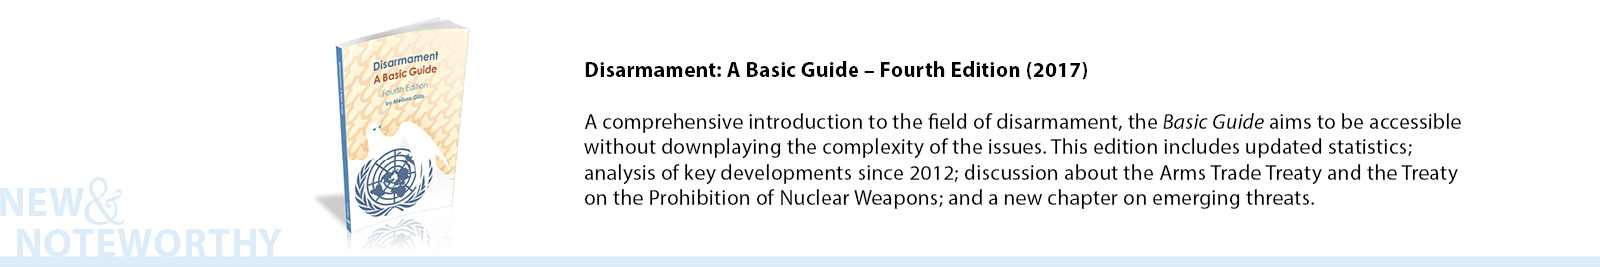 Disarmament: A Basic Guide – Fourth Edition (2017) - A comprehensive introduction to the field of disarmament, the Basic Guide aims to be accessible without downplaying the complexity of the issues. This edition includes updated statistics; analysis of key developments since 2012; discussion about the Arms Trade Treaty and the Treaty on the Prohibition of Nuclear Weapons; and a new chapter on emerging threats.